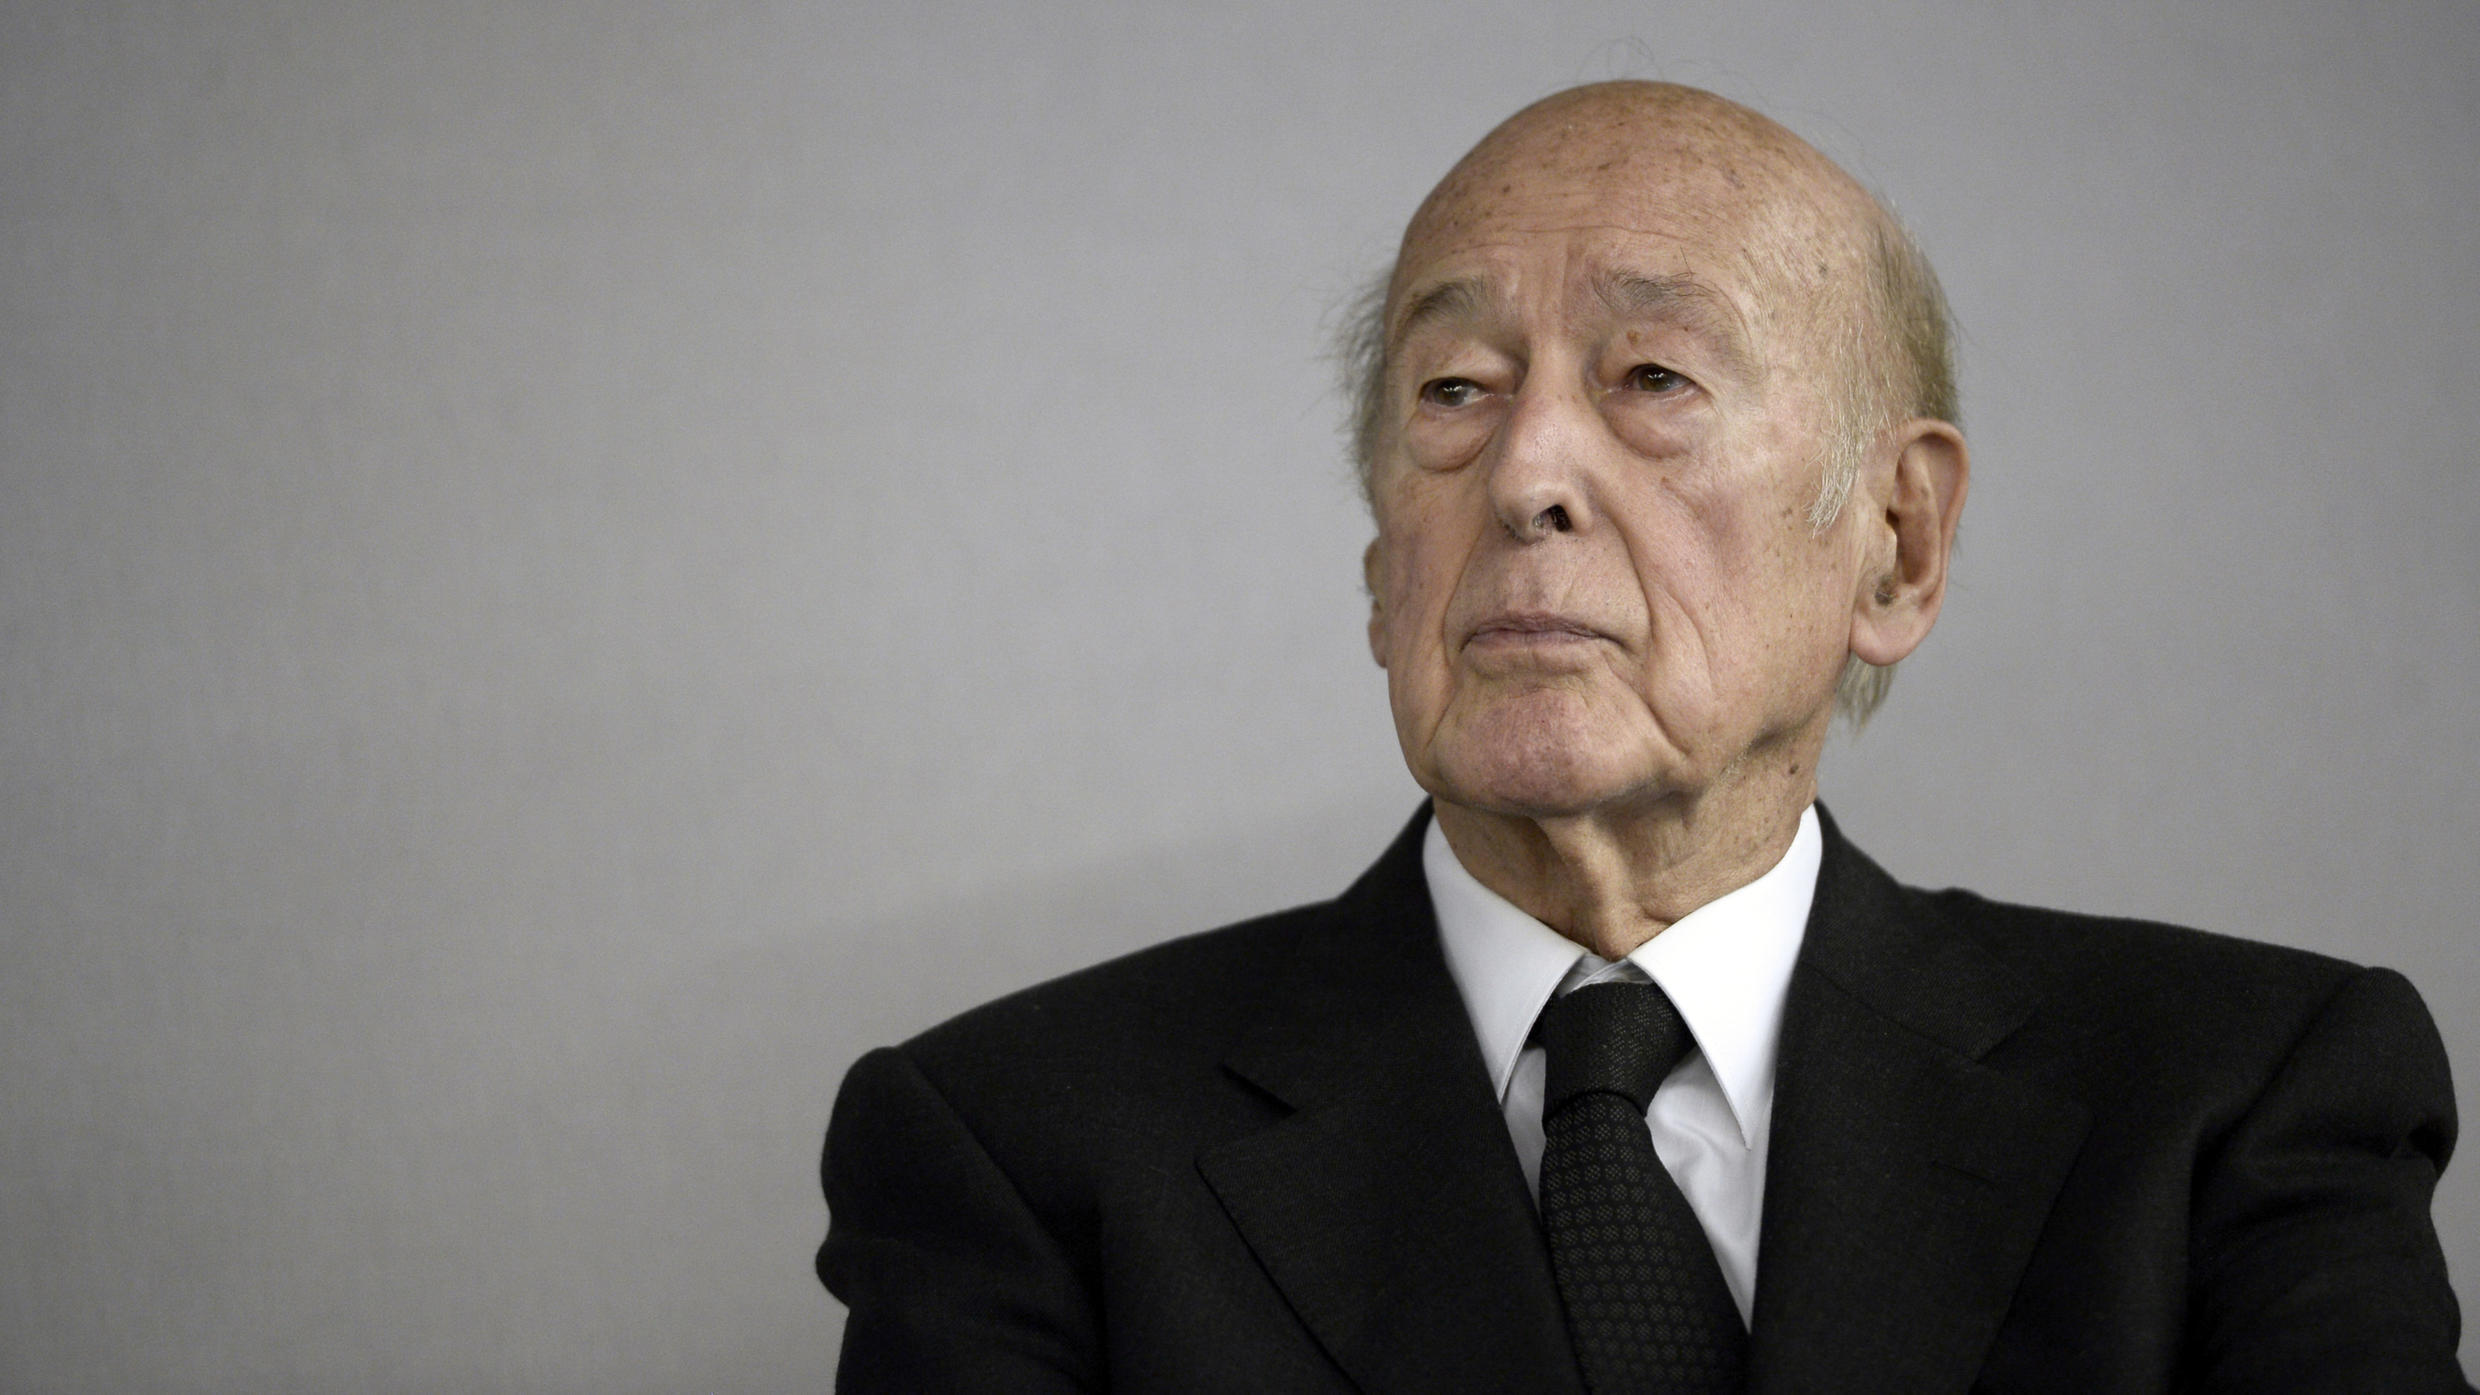 In this file photo taken on October 14, 2014, former French President Valery Giscard d'Estaing is pictured during the opening of the World Nuclear Exhibition (WNE) at Le Bourget, Paris.